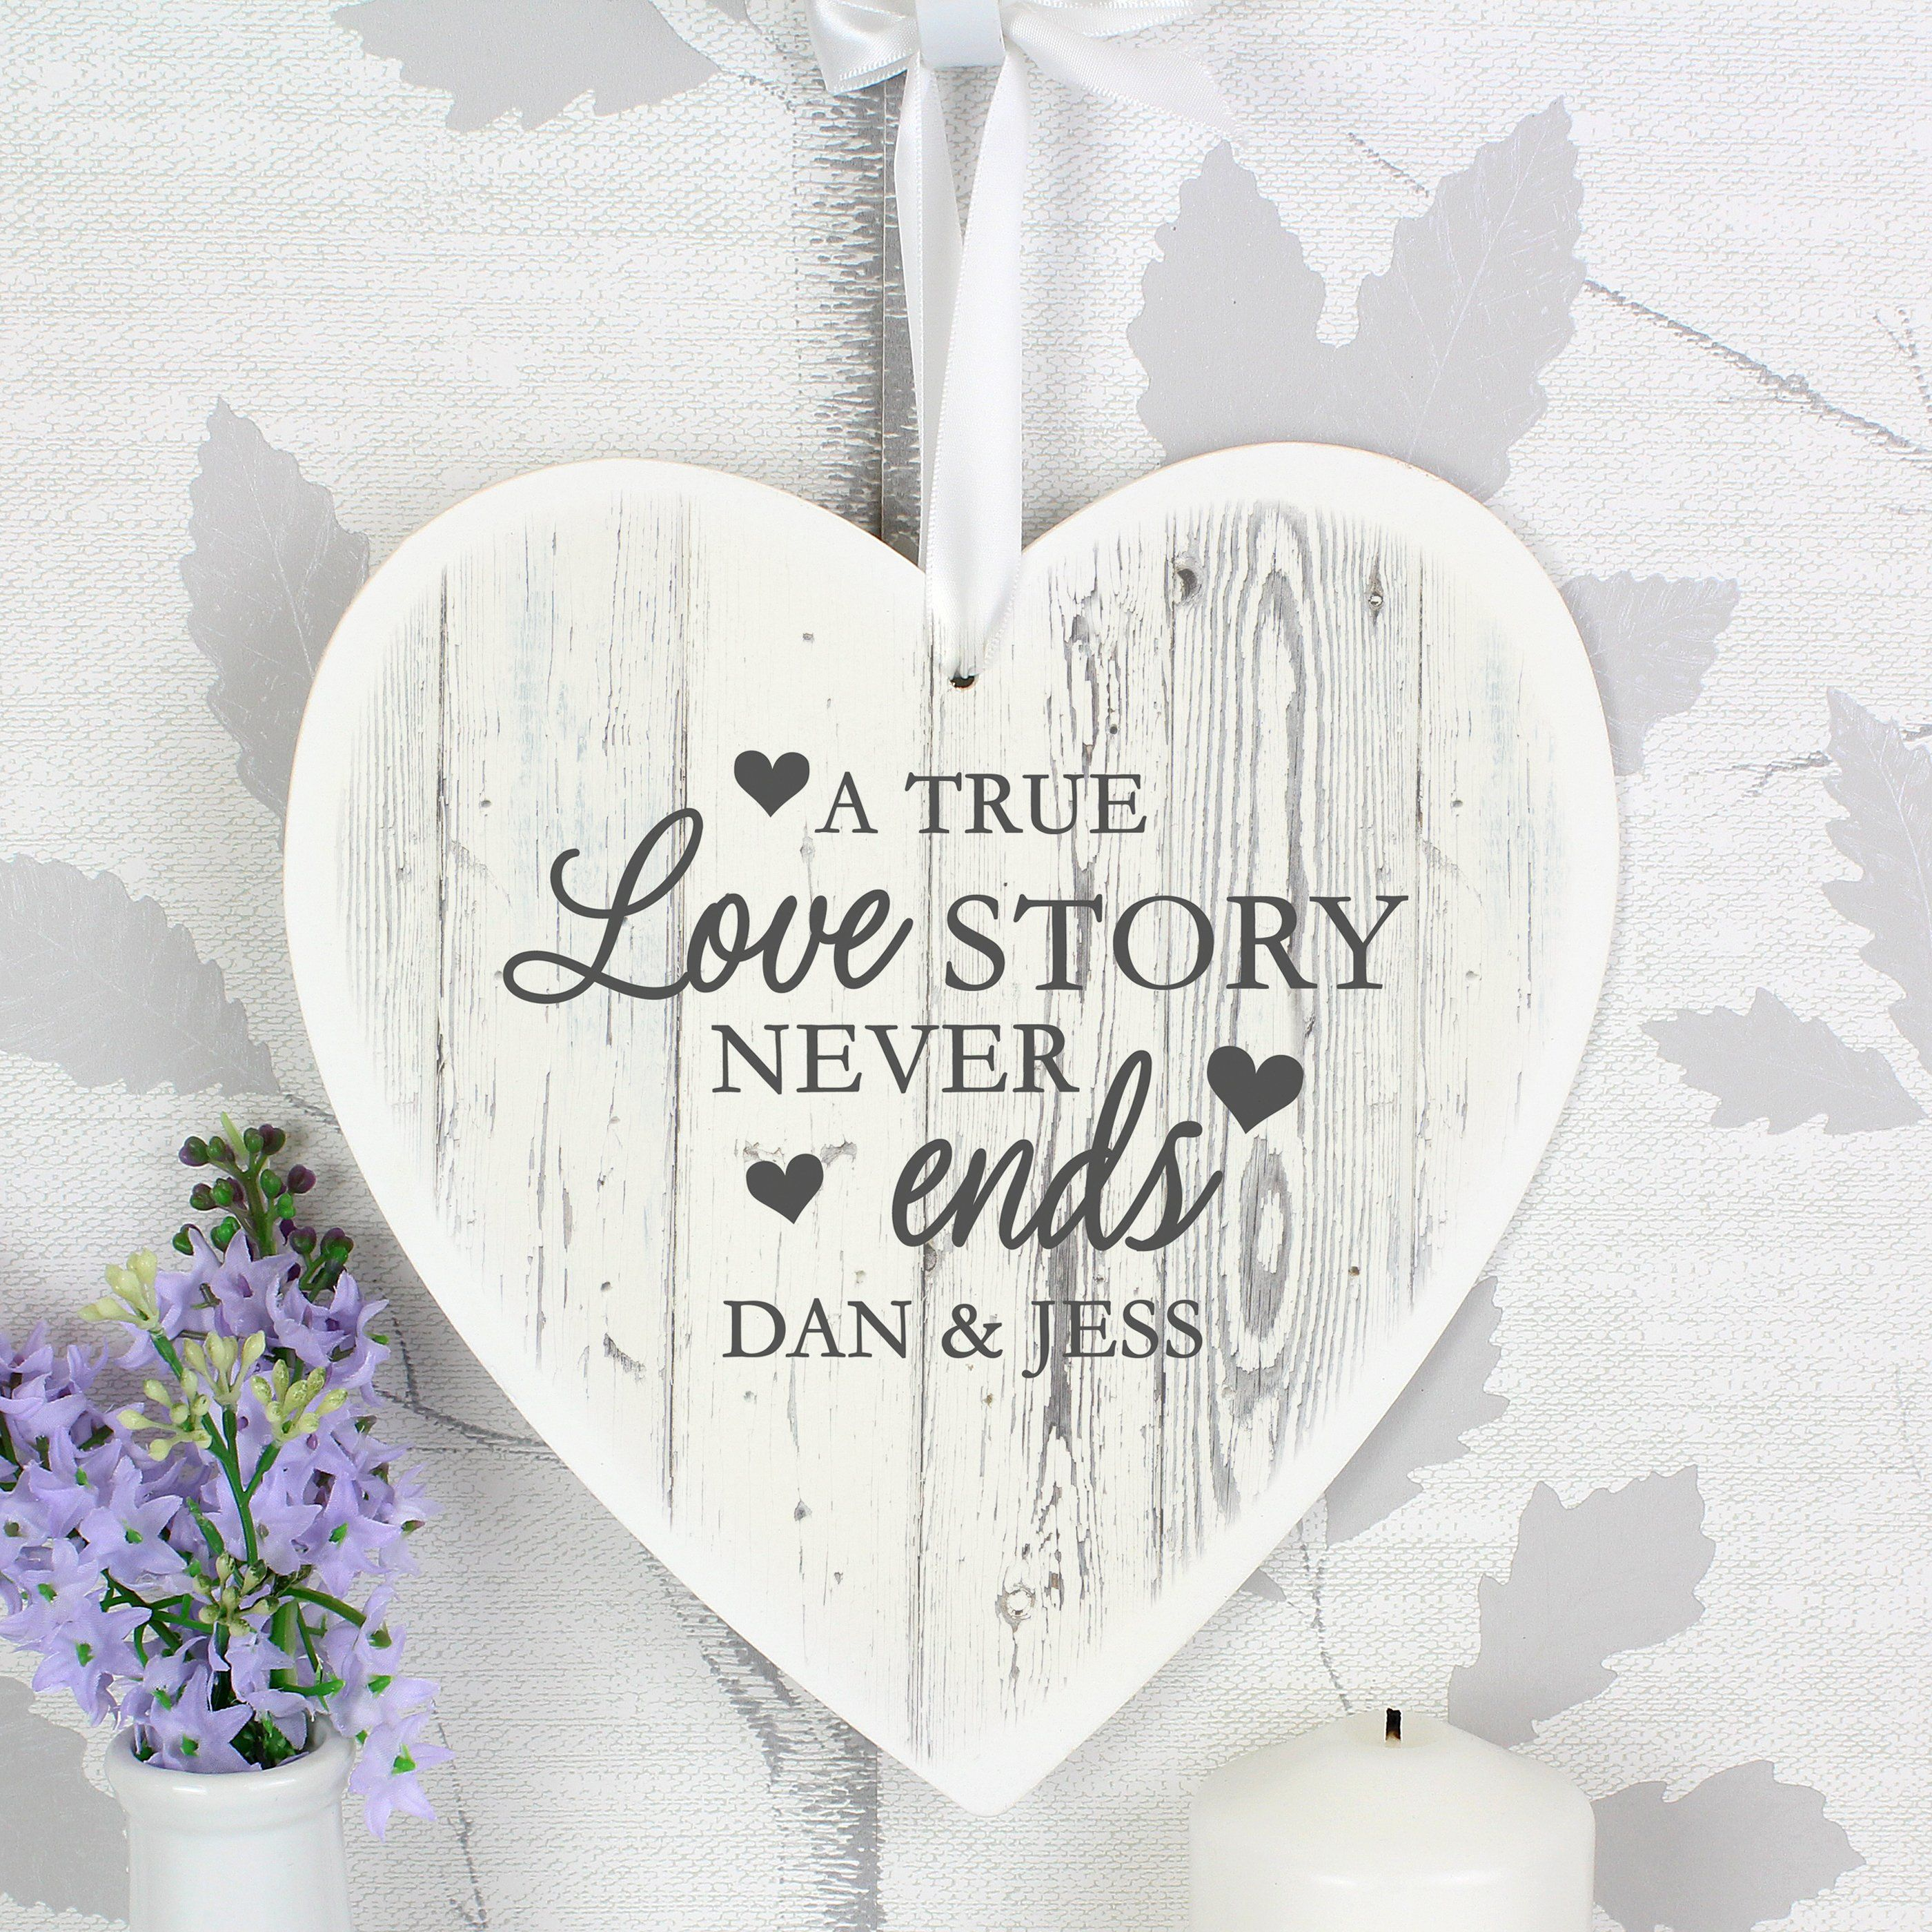 This stunning Personalised Love Story 22cm Large Wooden Heart Decoration is a perfect way to add a romantic touch to your home. This wooden heart decoration can be personalised with a line of text of up to 25 characters The text will appear in fixed upper case. The words 'A true love story never ends' are fixed and cannot be amended. This item is supplied with ribbon ready to hang onto a gift, mantelpiece or tree. Ideal for Weddings, Valentine's Day, Anniversaries and New Home.